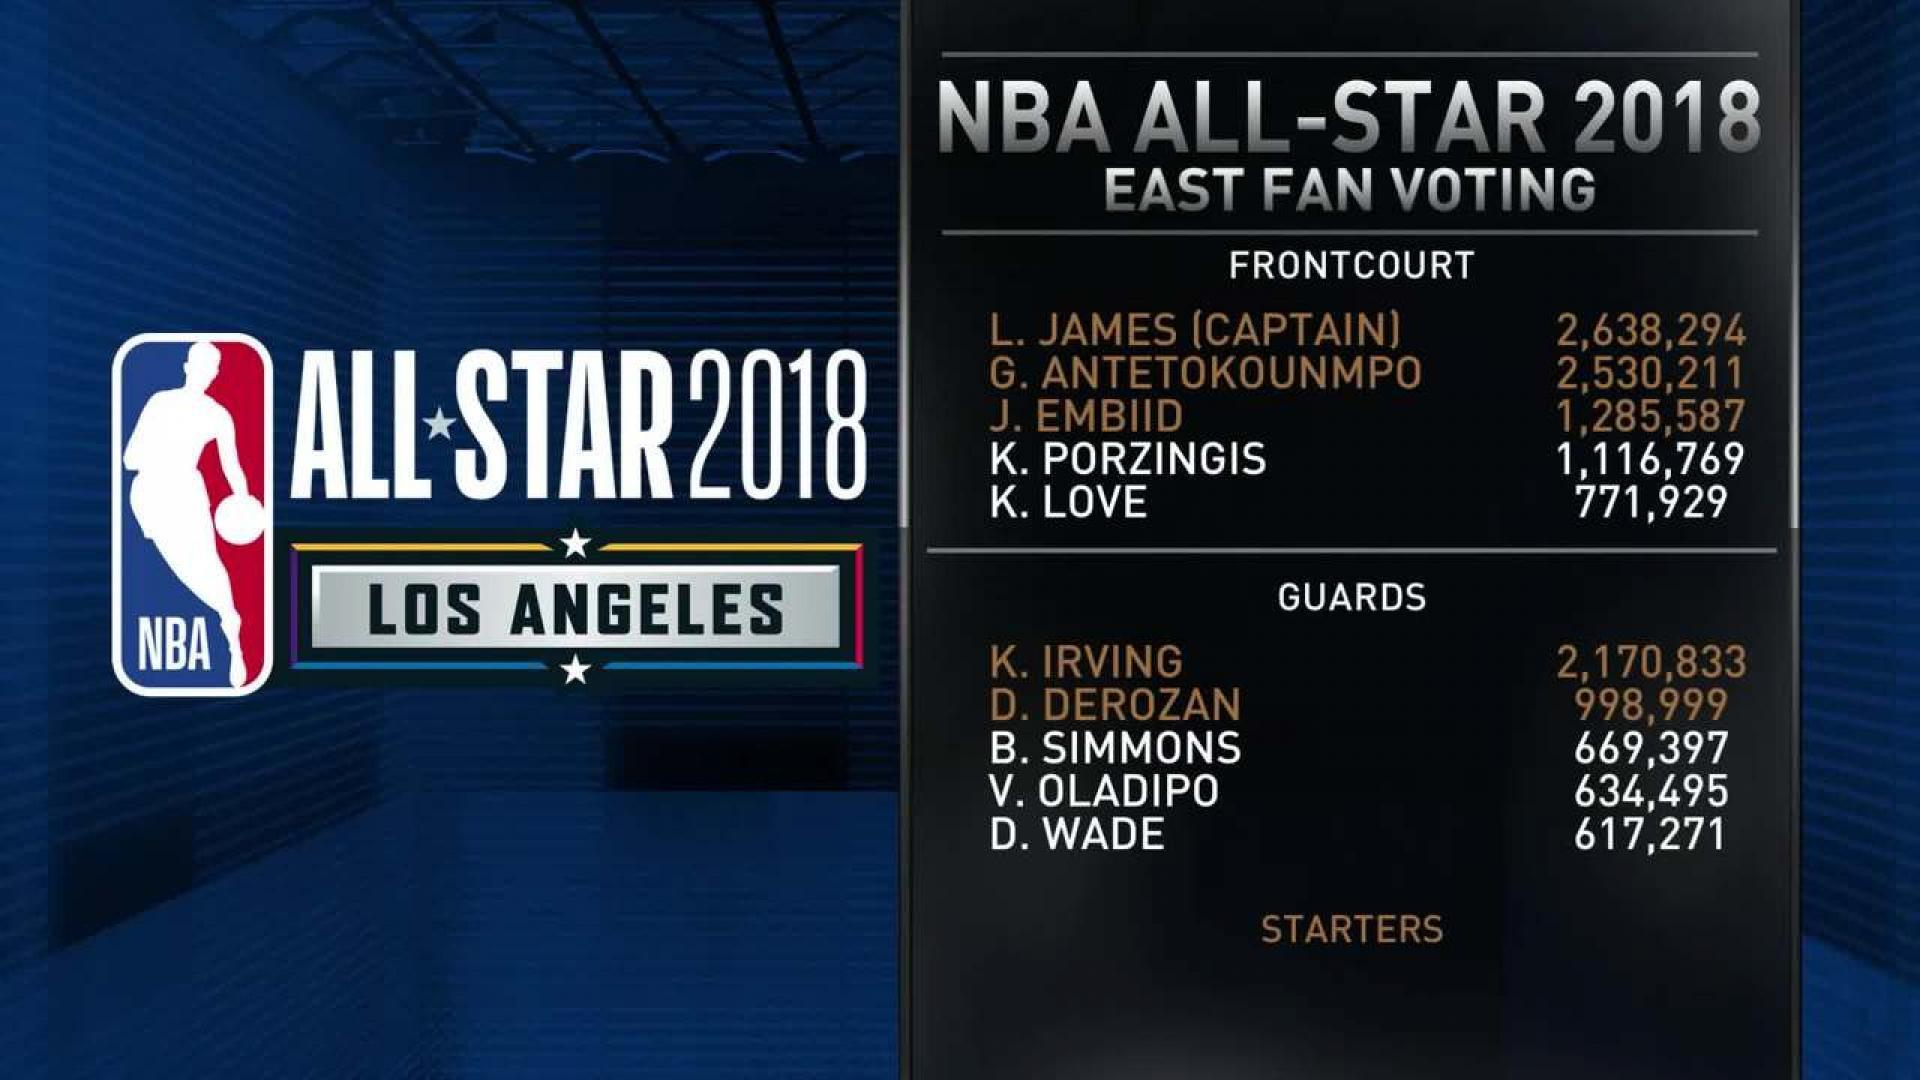 NBA All-Star 2018 reserves and rosters